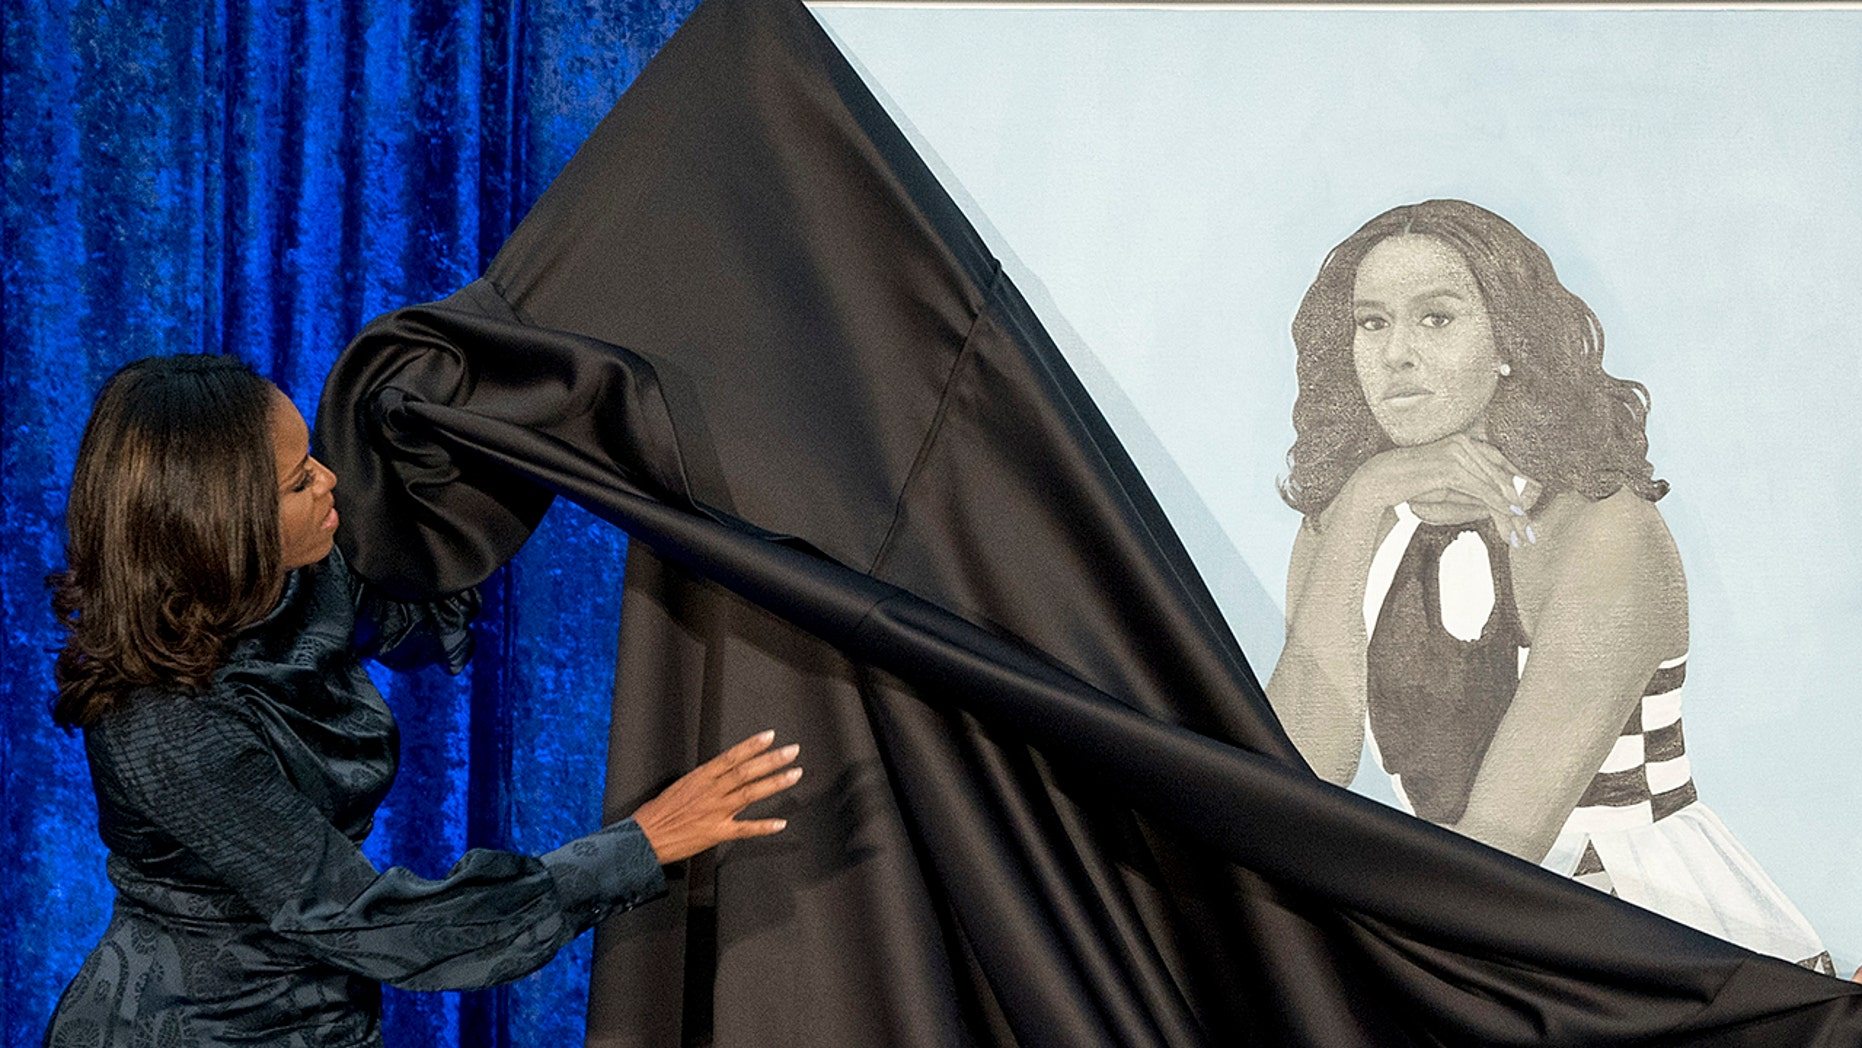 Former first lady Michelle Obama unveils her portrait at the Smithsonian's National Portrait Gallery.